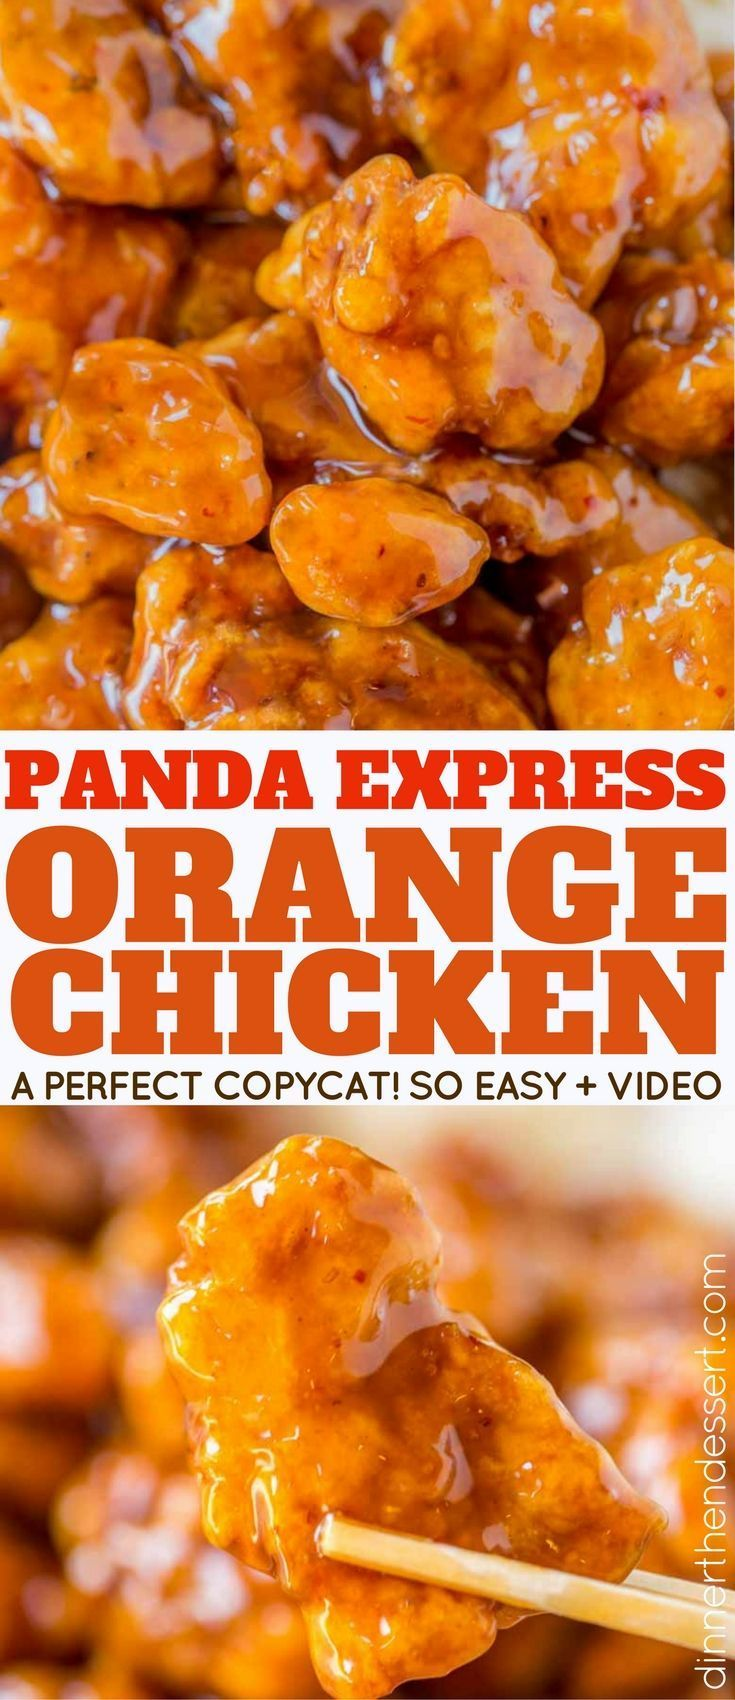 Panda Express Orange Chicken with tender chicken thighs fried crisp and tossed in a magical perfect-copycat sauce! With a video! #chinesefoodrecipes